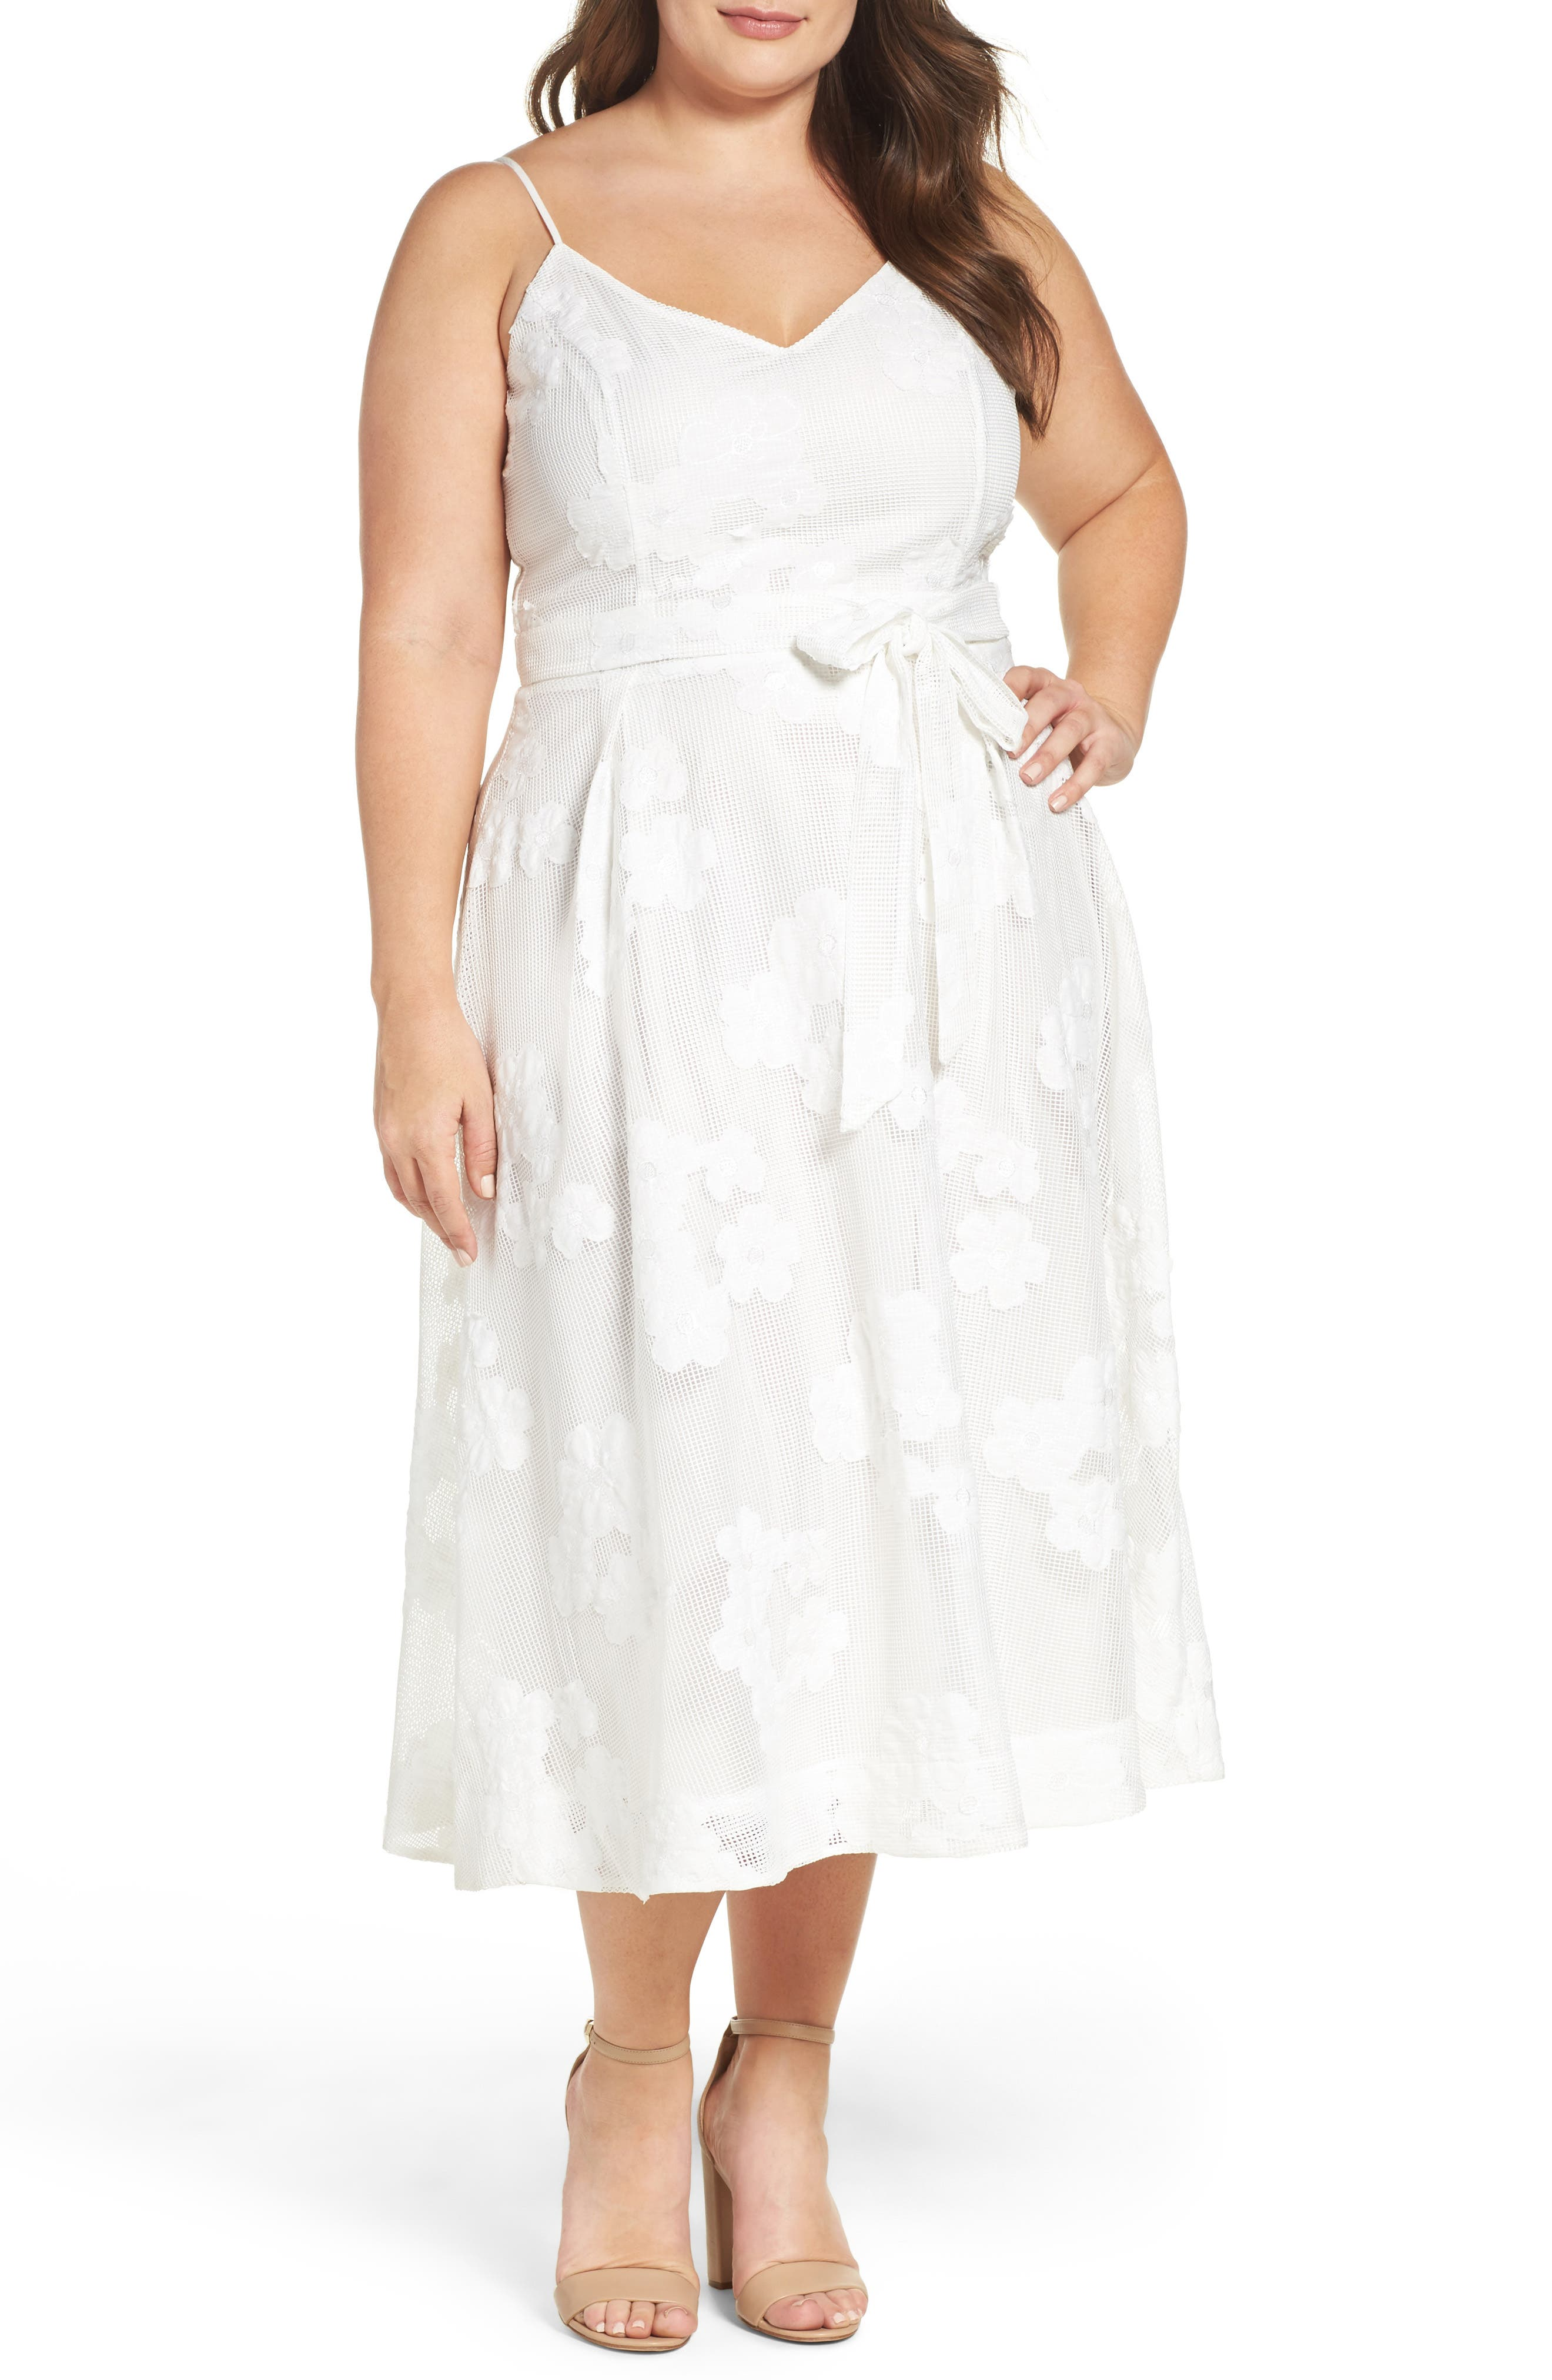 Vintage Inspired Wedding Dress | Vintage Style Wedding Dresses Plus Size Womens City Chic Mesh Floral Sundress $119.00 AT vintagedancer.com